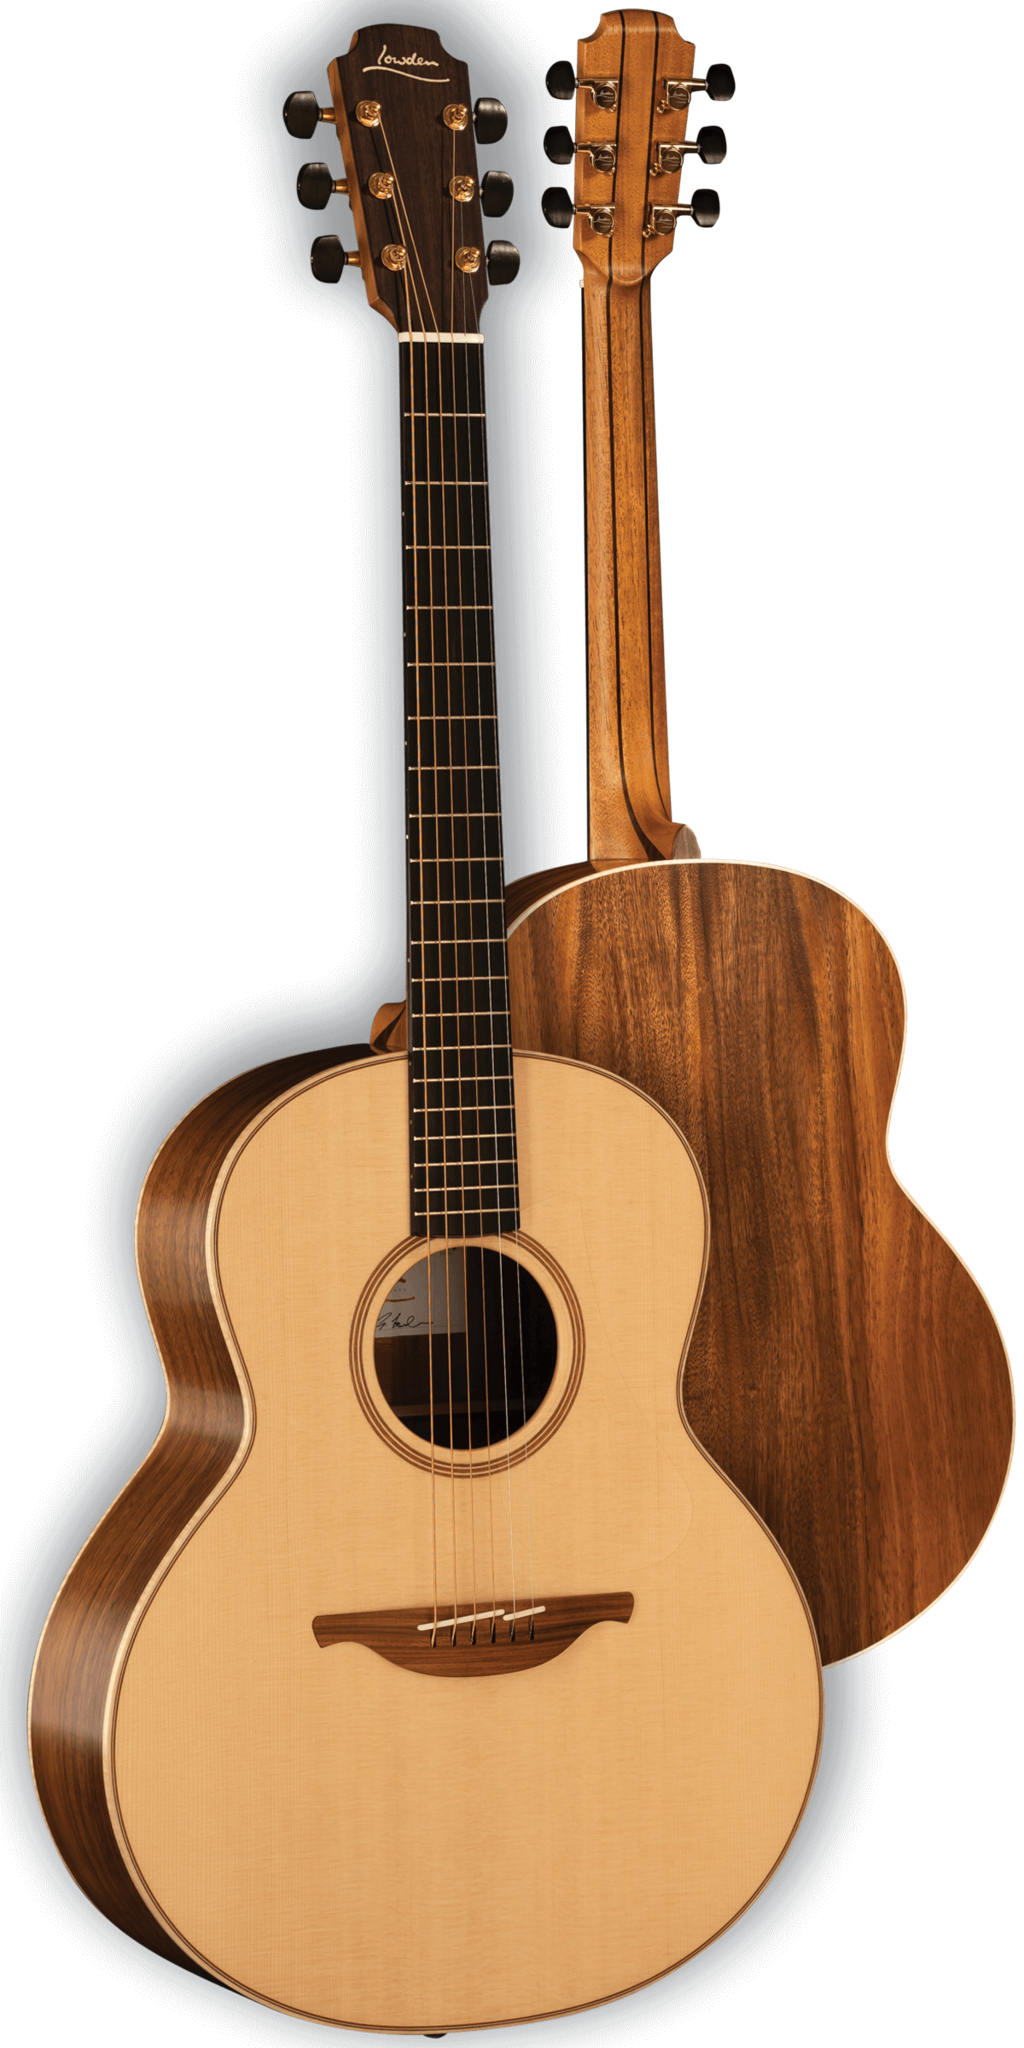 The new Lowden models: Koa and more 12-frets!